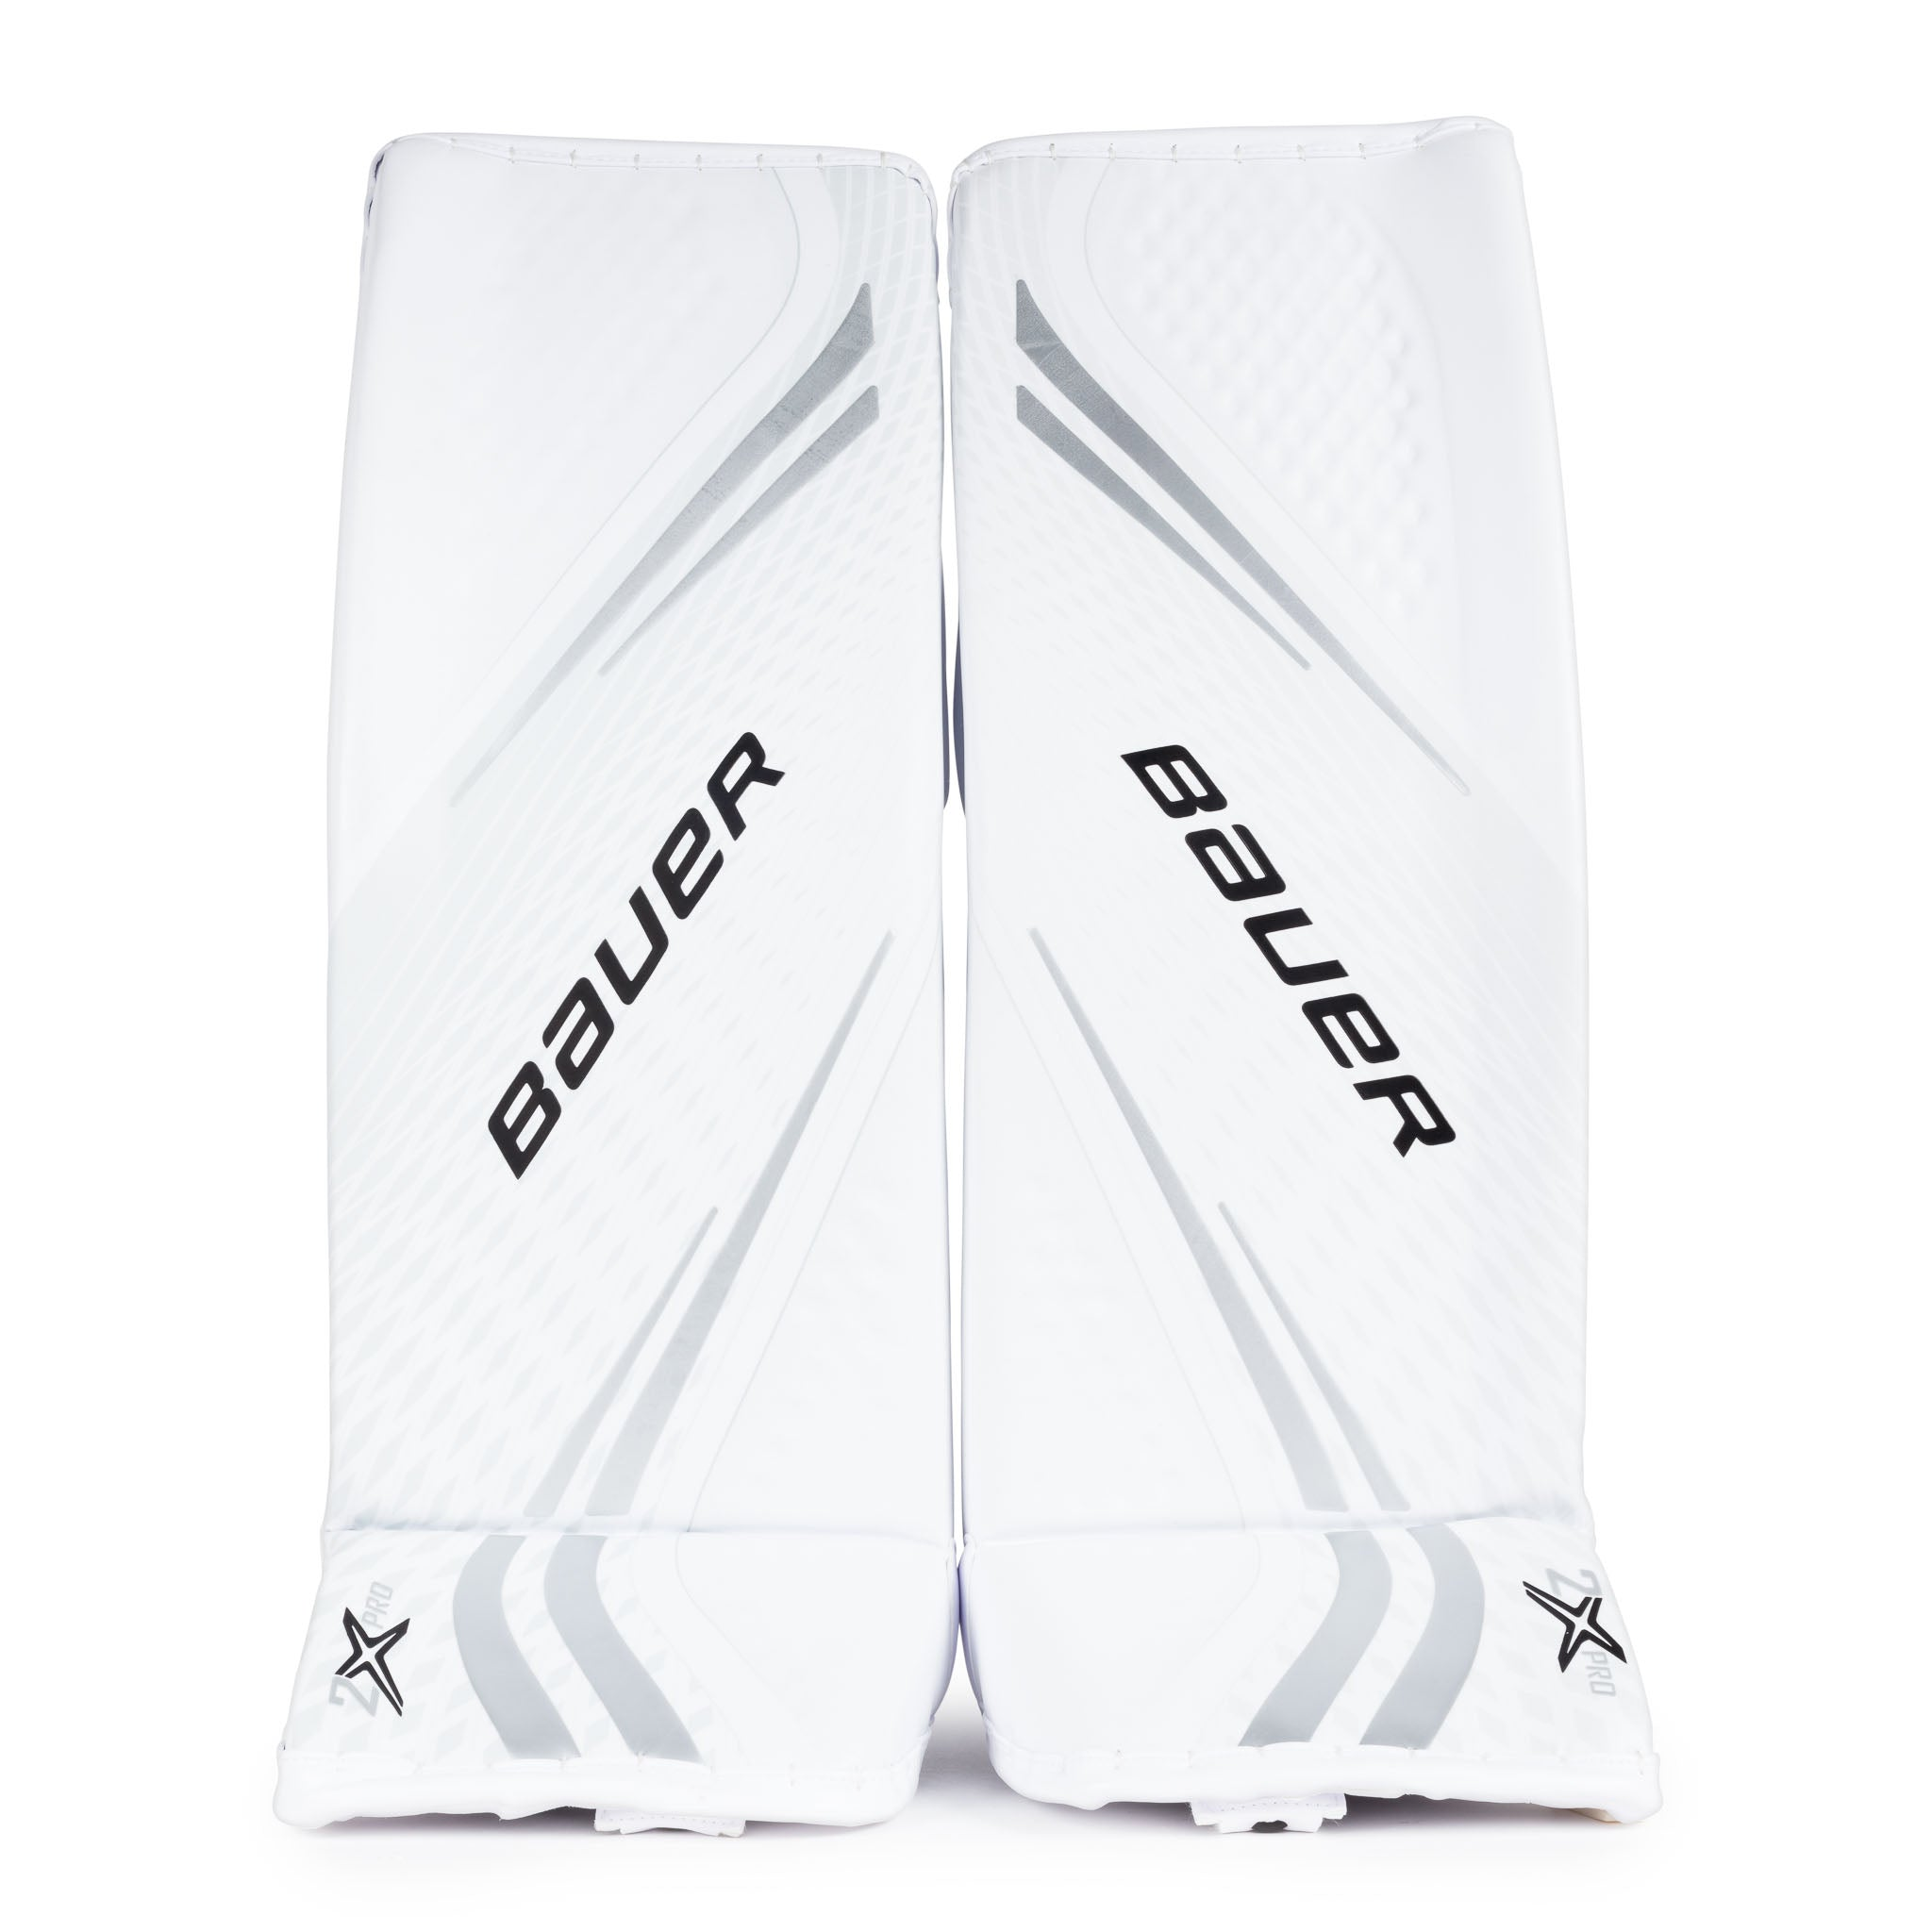 Bauer Vapor X2 7 Senior Goalie Pads – The Hockey Shop Source